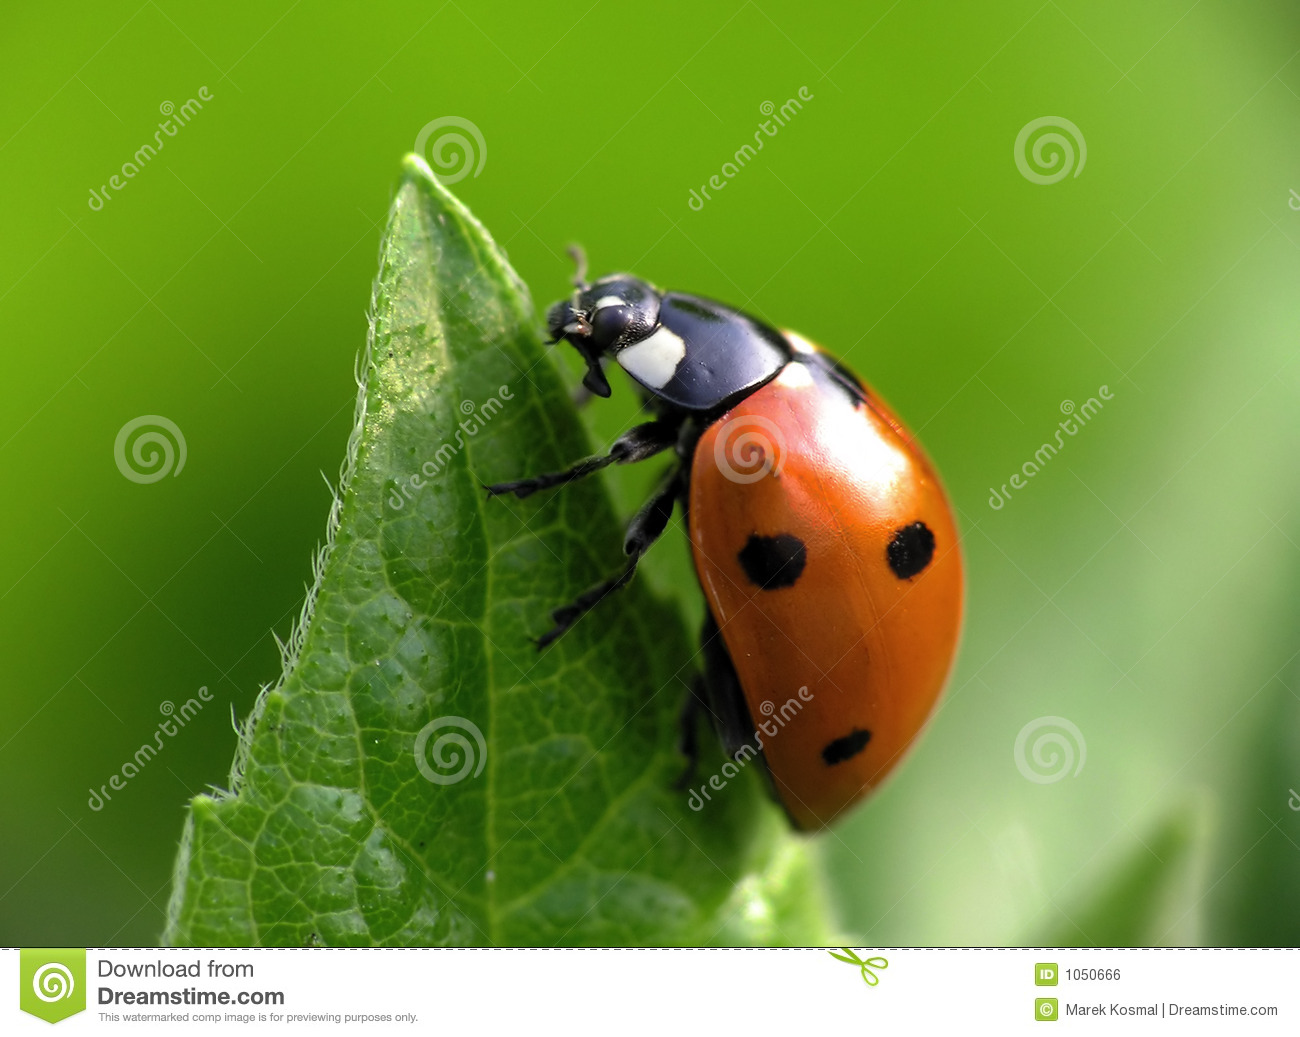 Ladybug on top